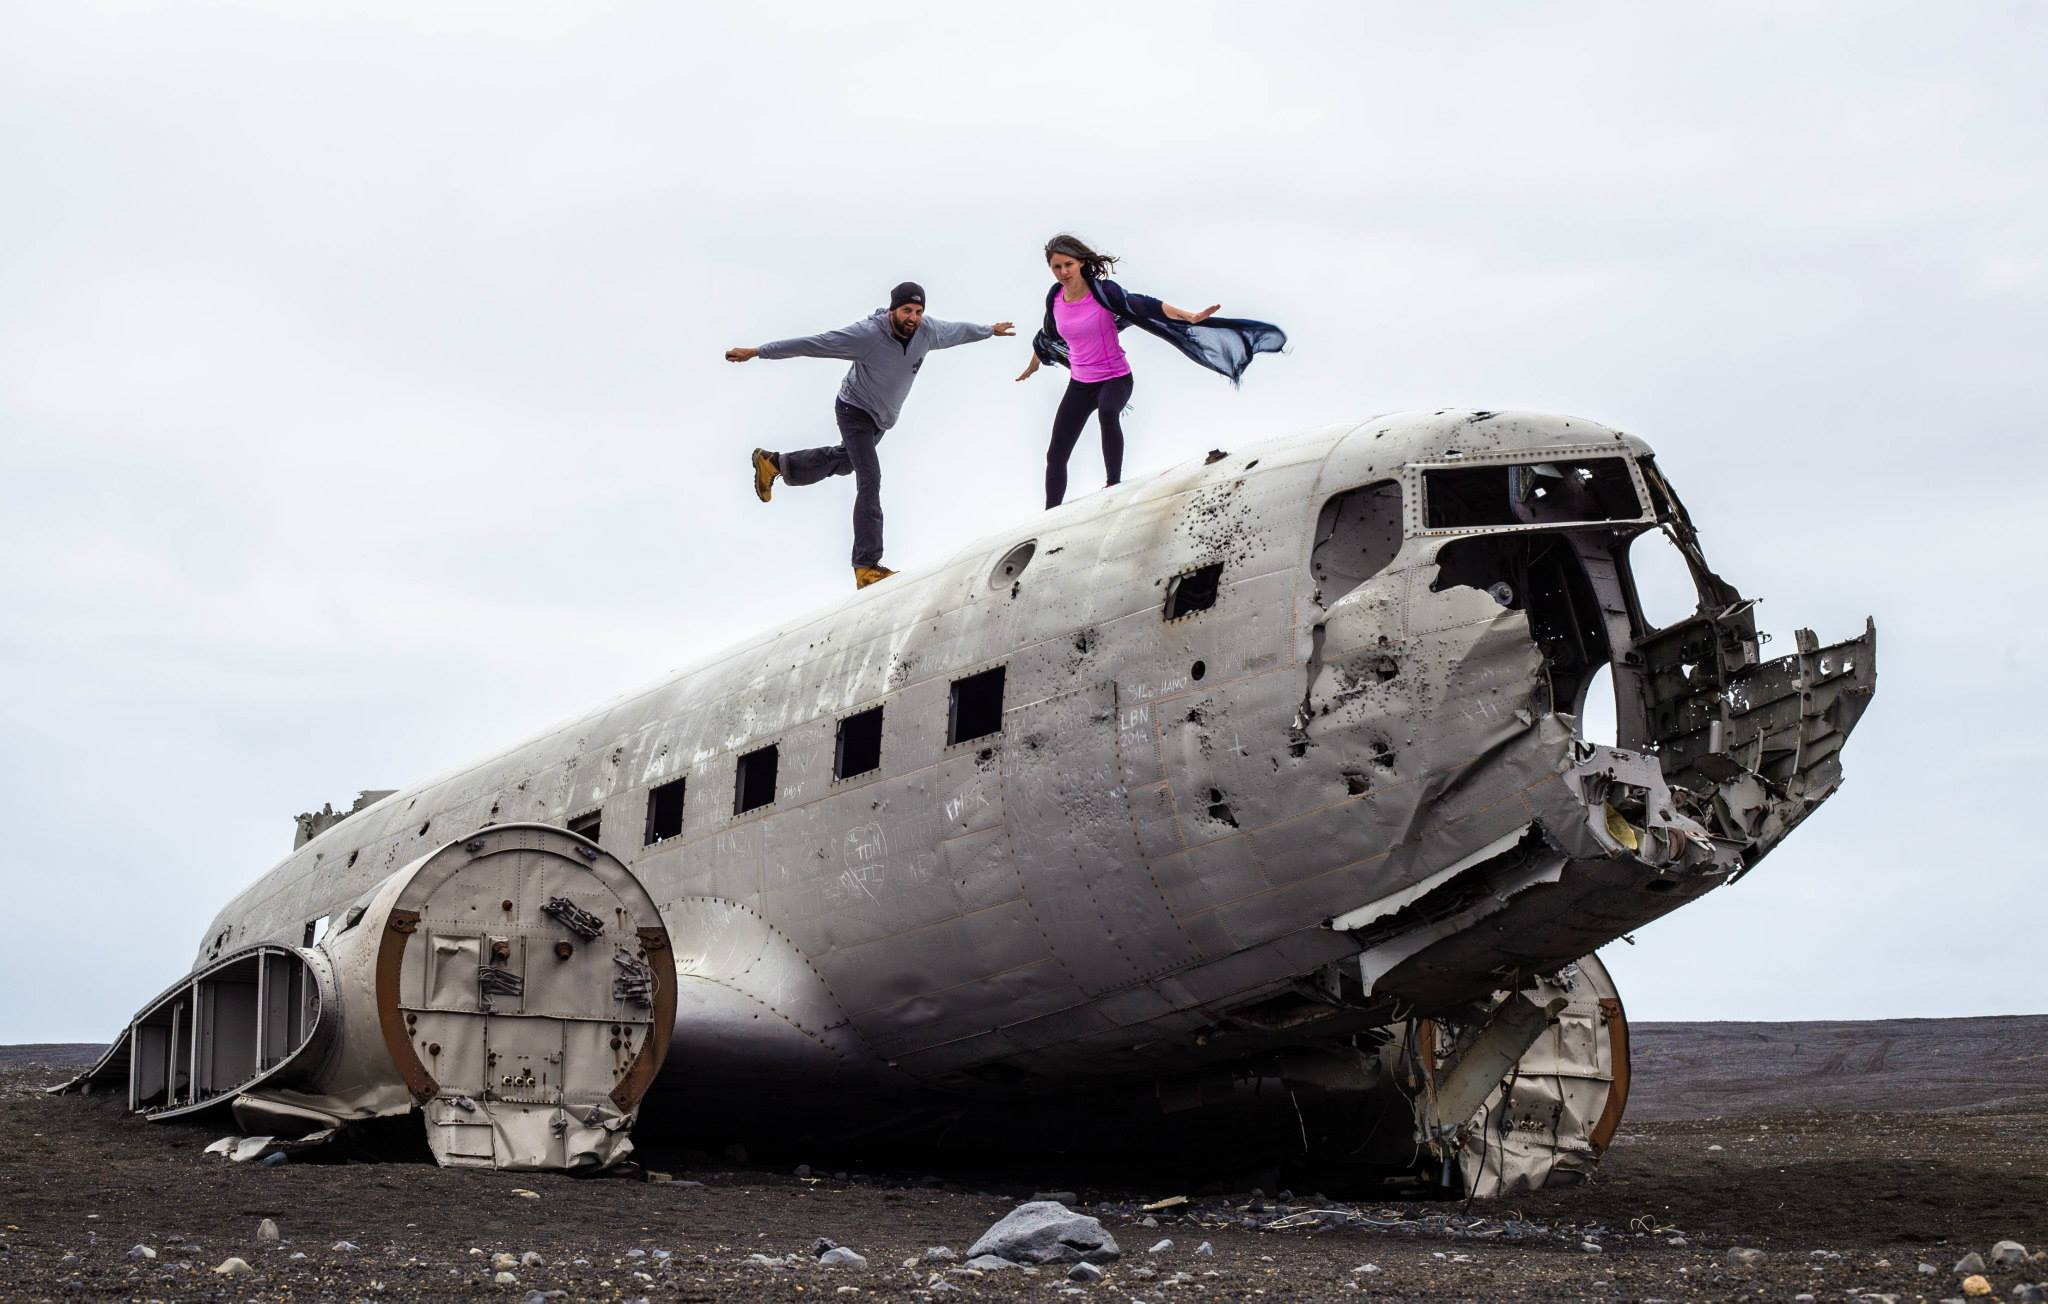 US Navy plane iceland thisworldexists dean chytraus this world exists